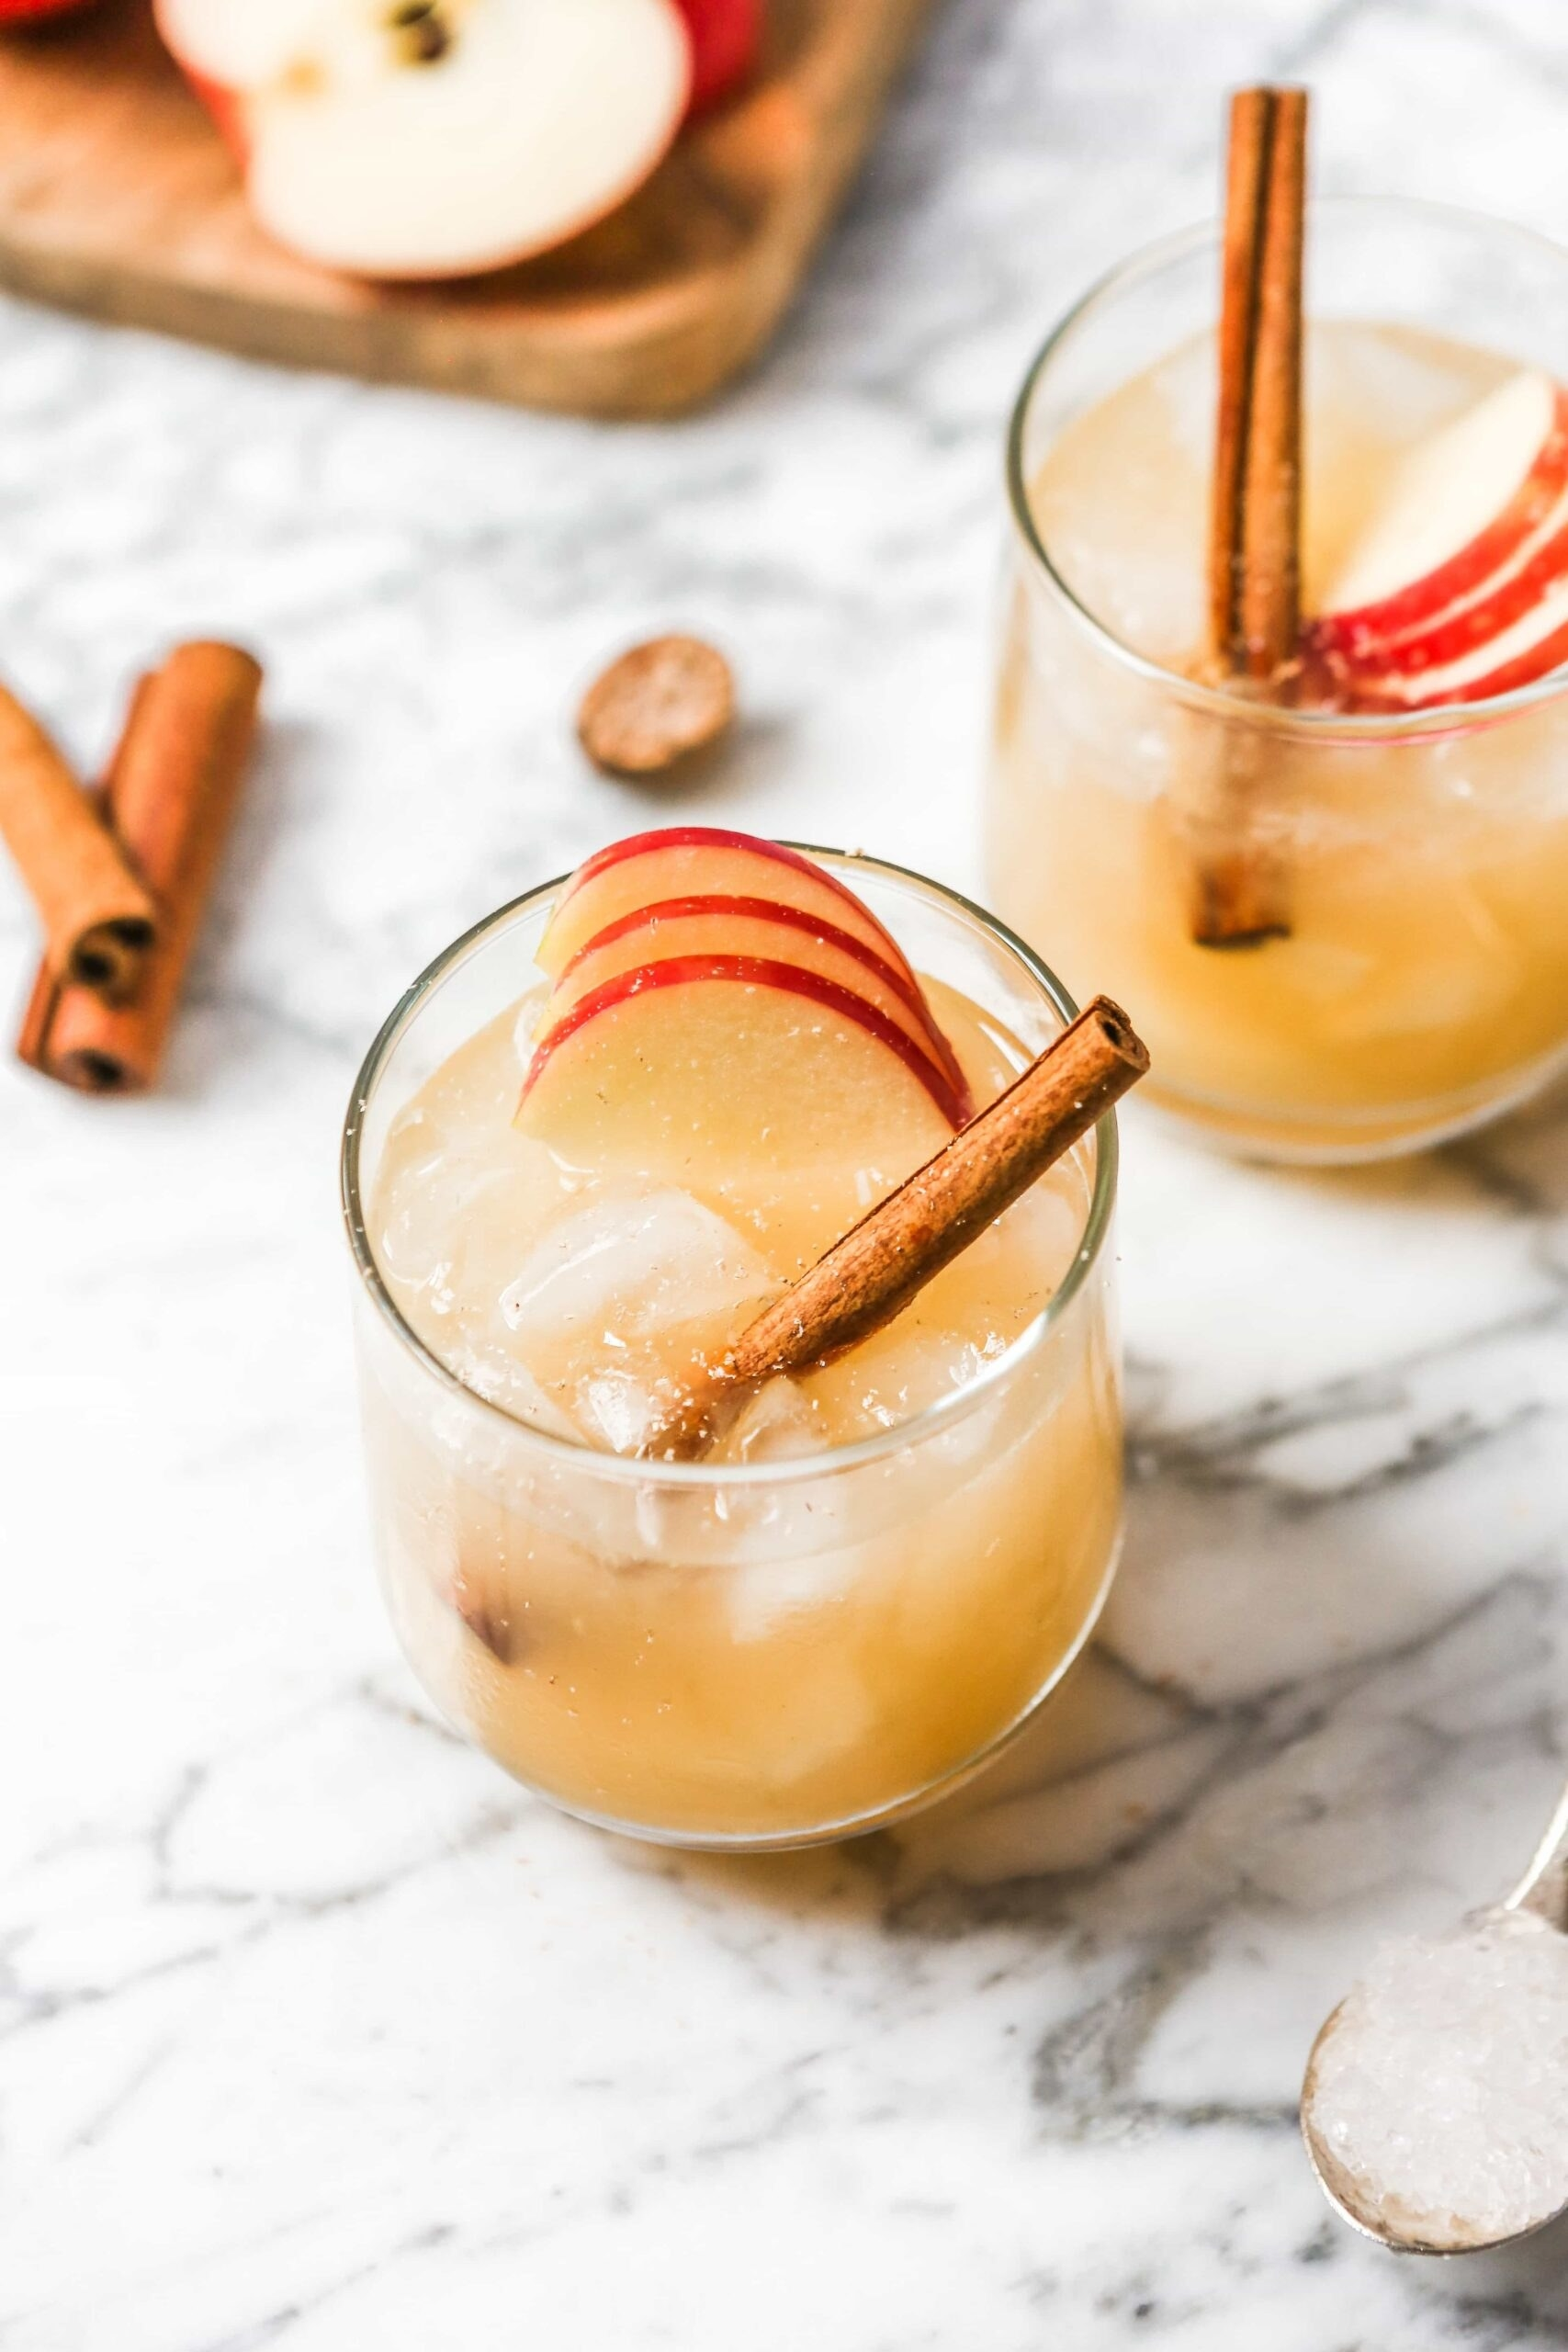 Apple bourbon smash with a cinnamon stick in a glass